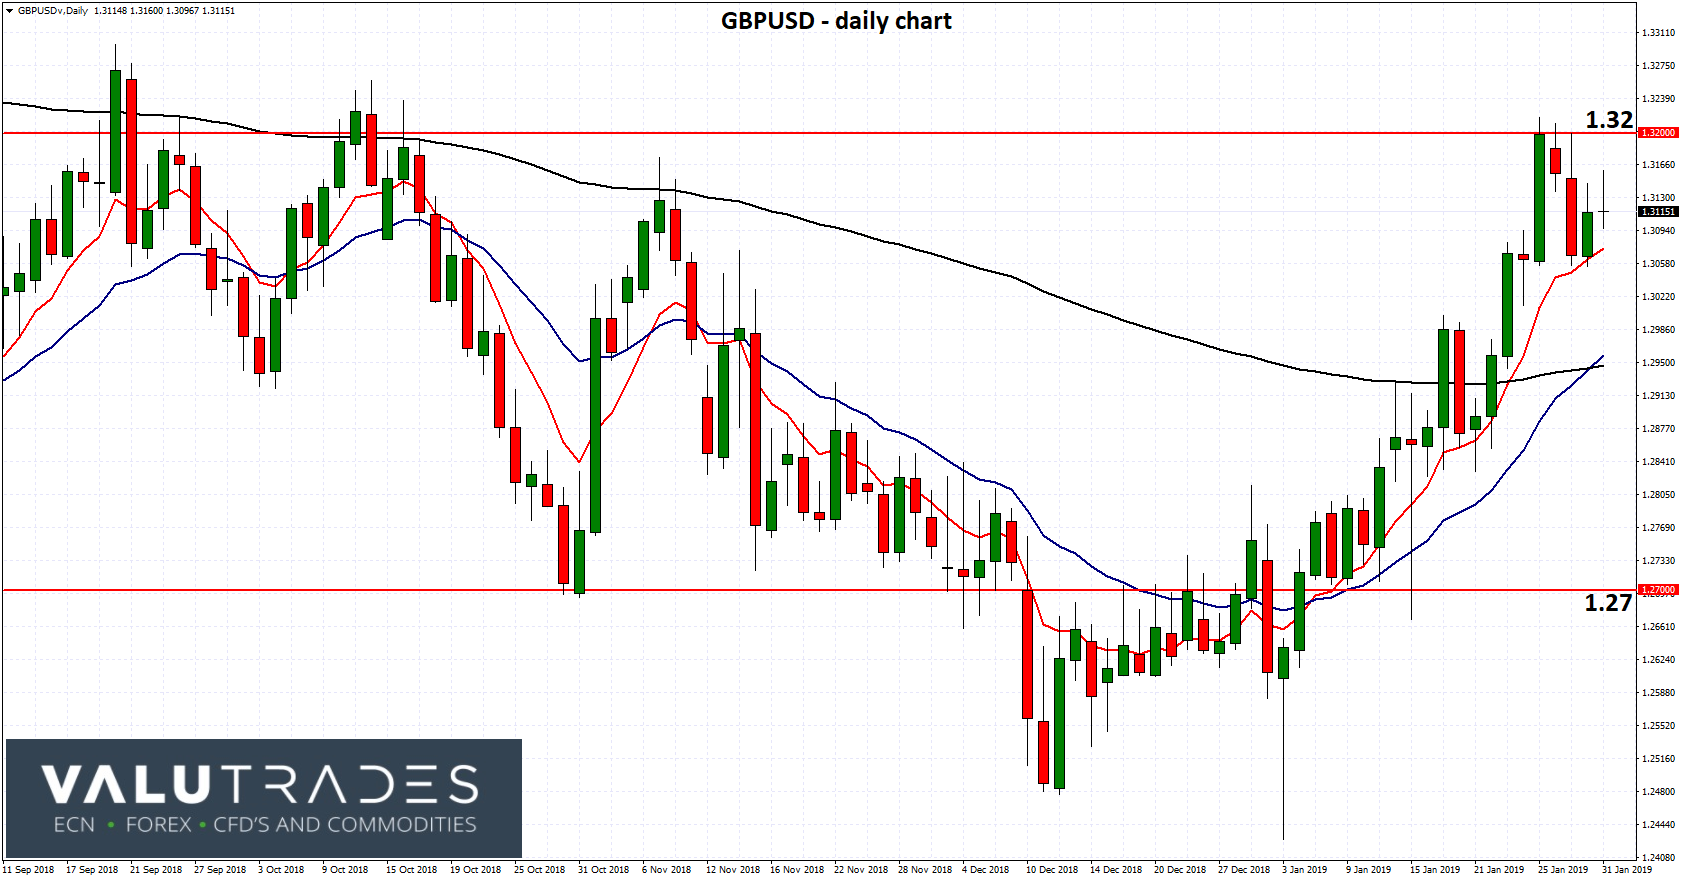 GBPUSD - Retreats from Resistance at 1.32 as PM May Tries Again with Brexit